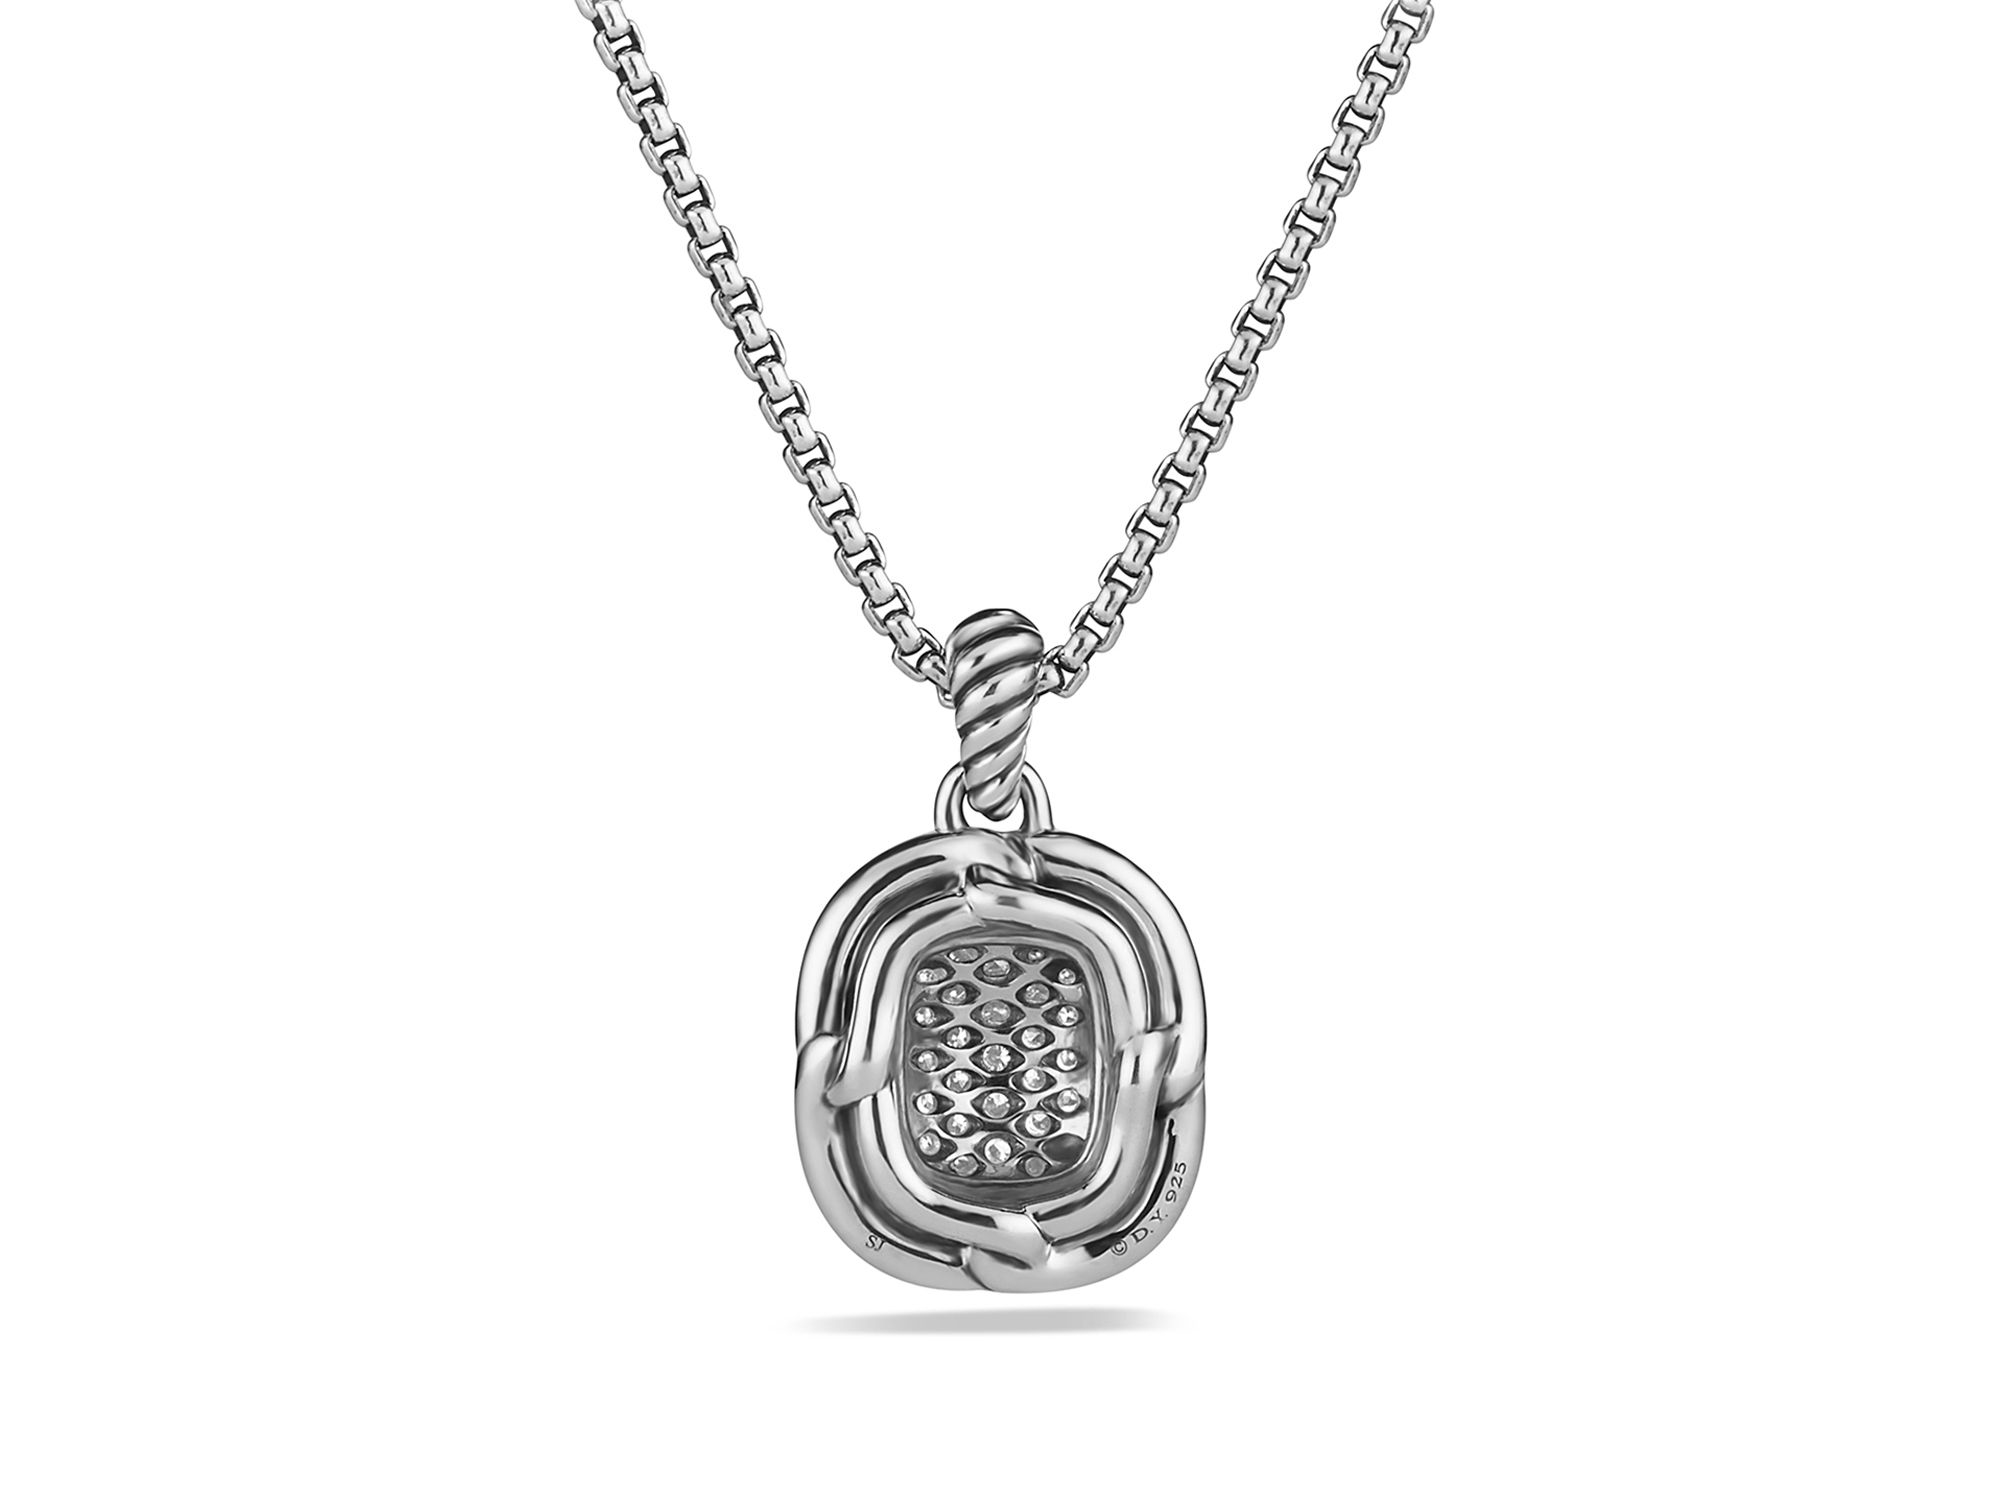 David Yurman Labyrinth Pendant With Diamonds On Chain in